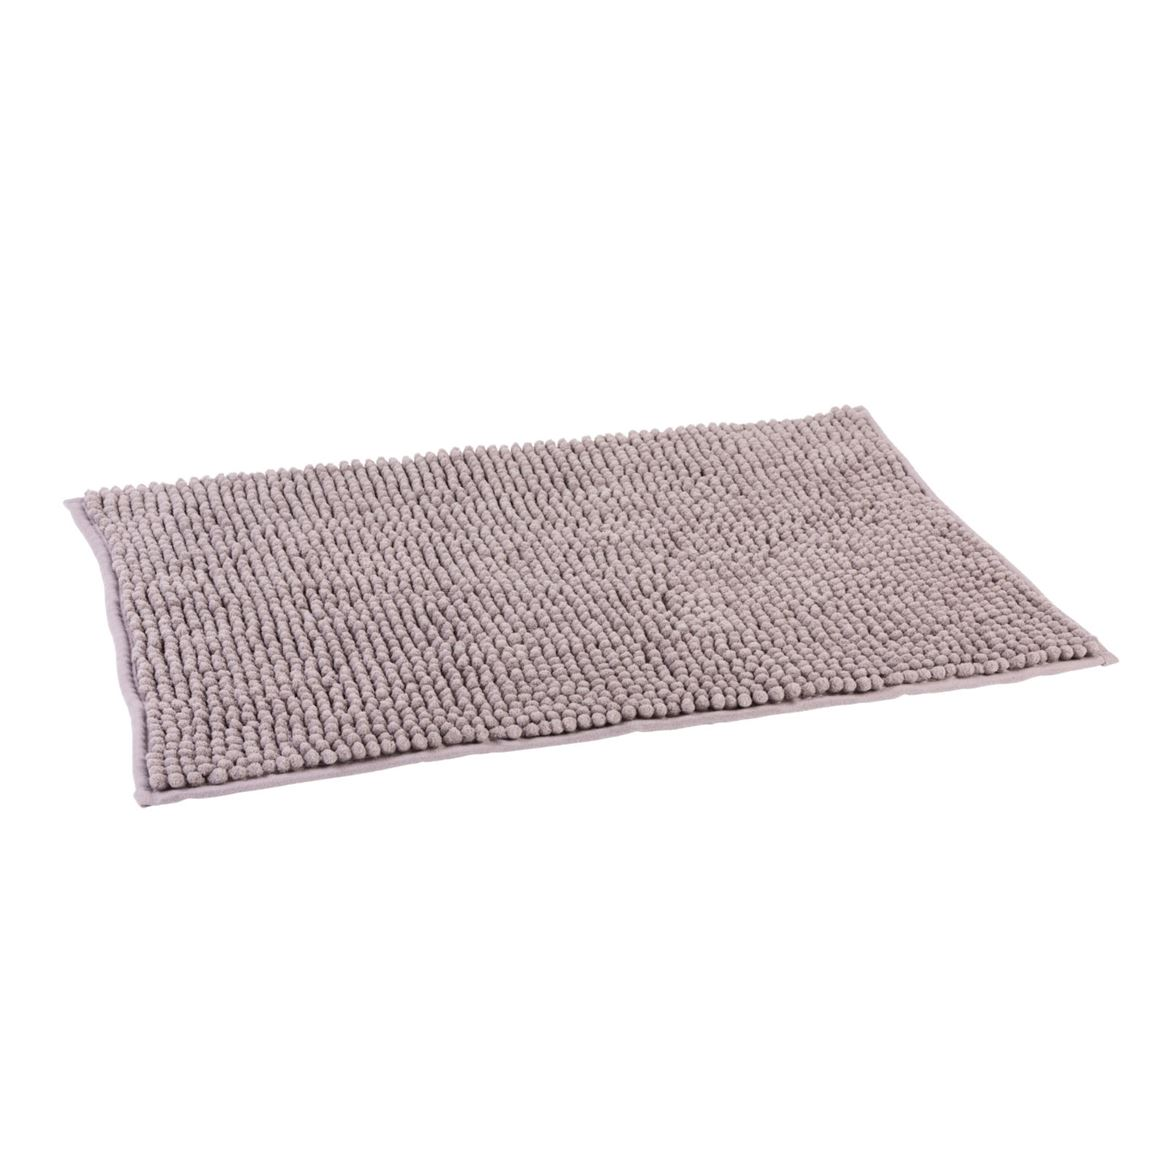 BREEZE Tapis de bain gris clair Larg. 40 x Long. 60 cm_breeze-tapis-de-bain-gris-clair-larg--40-x-long--60-cm